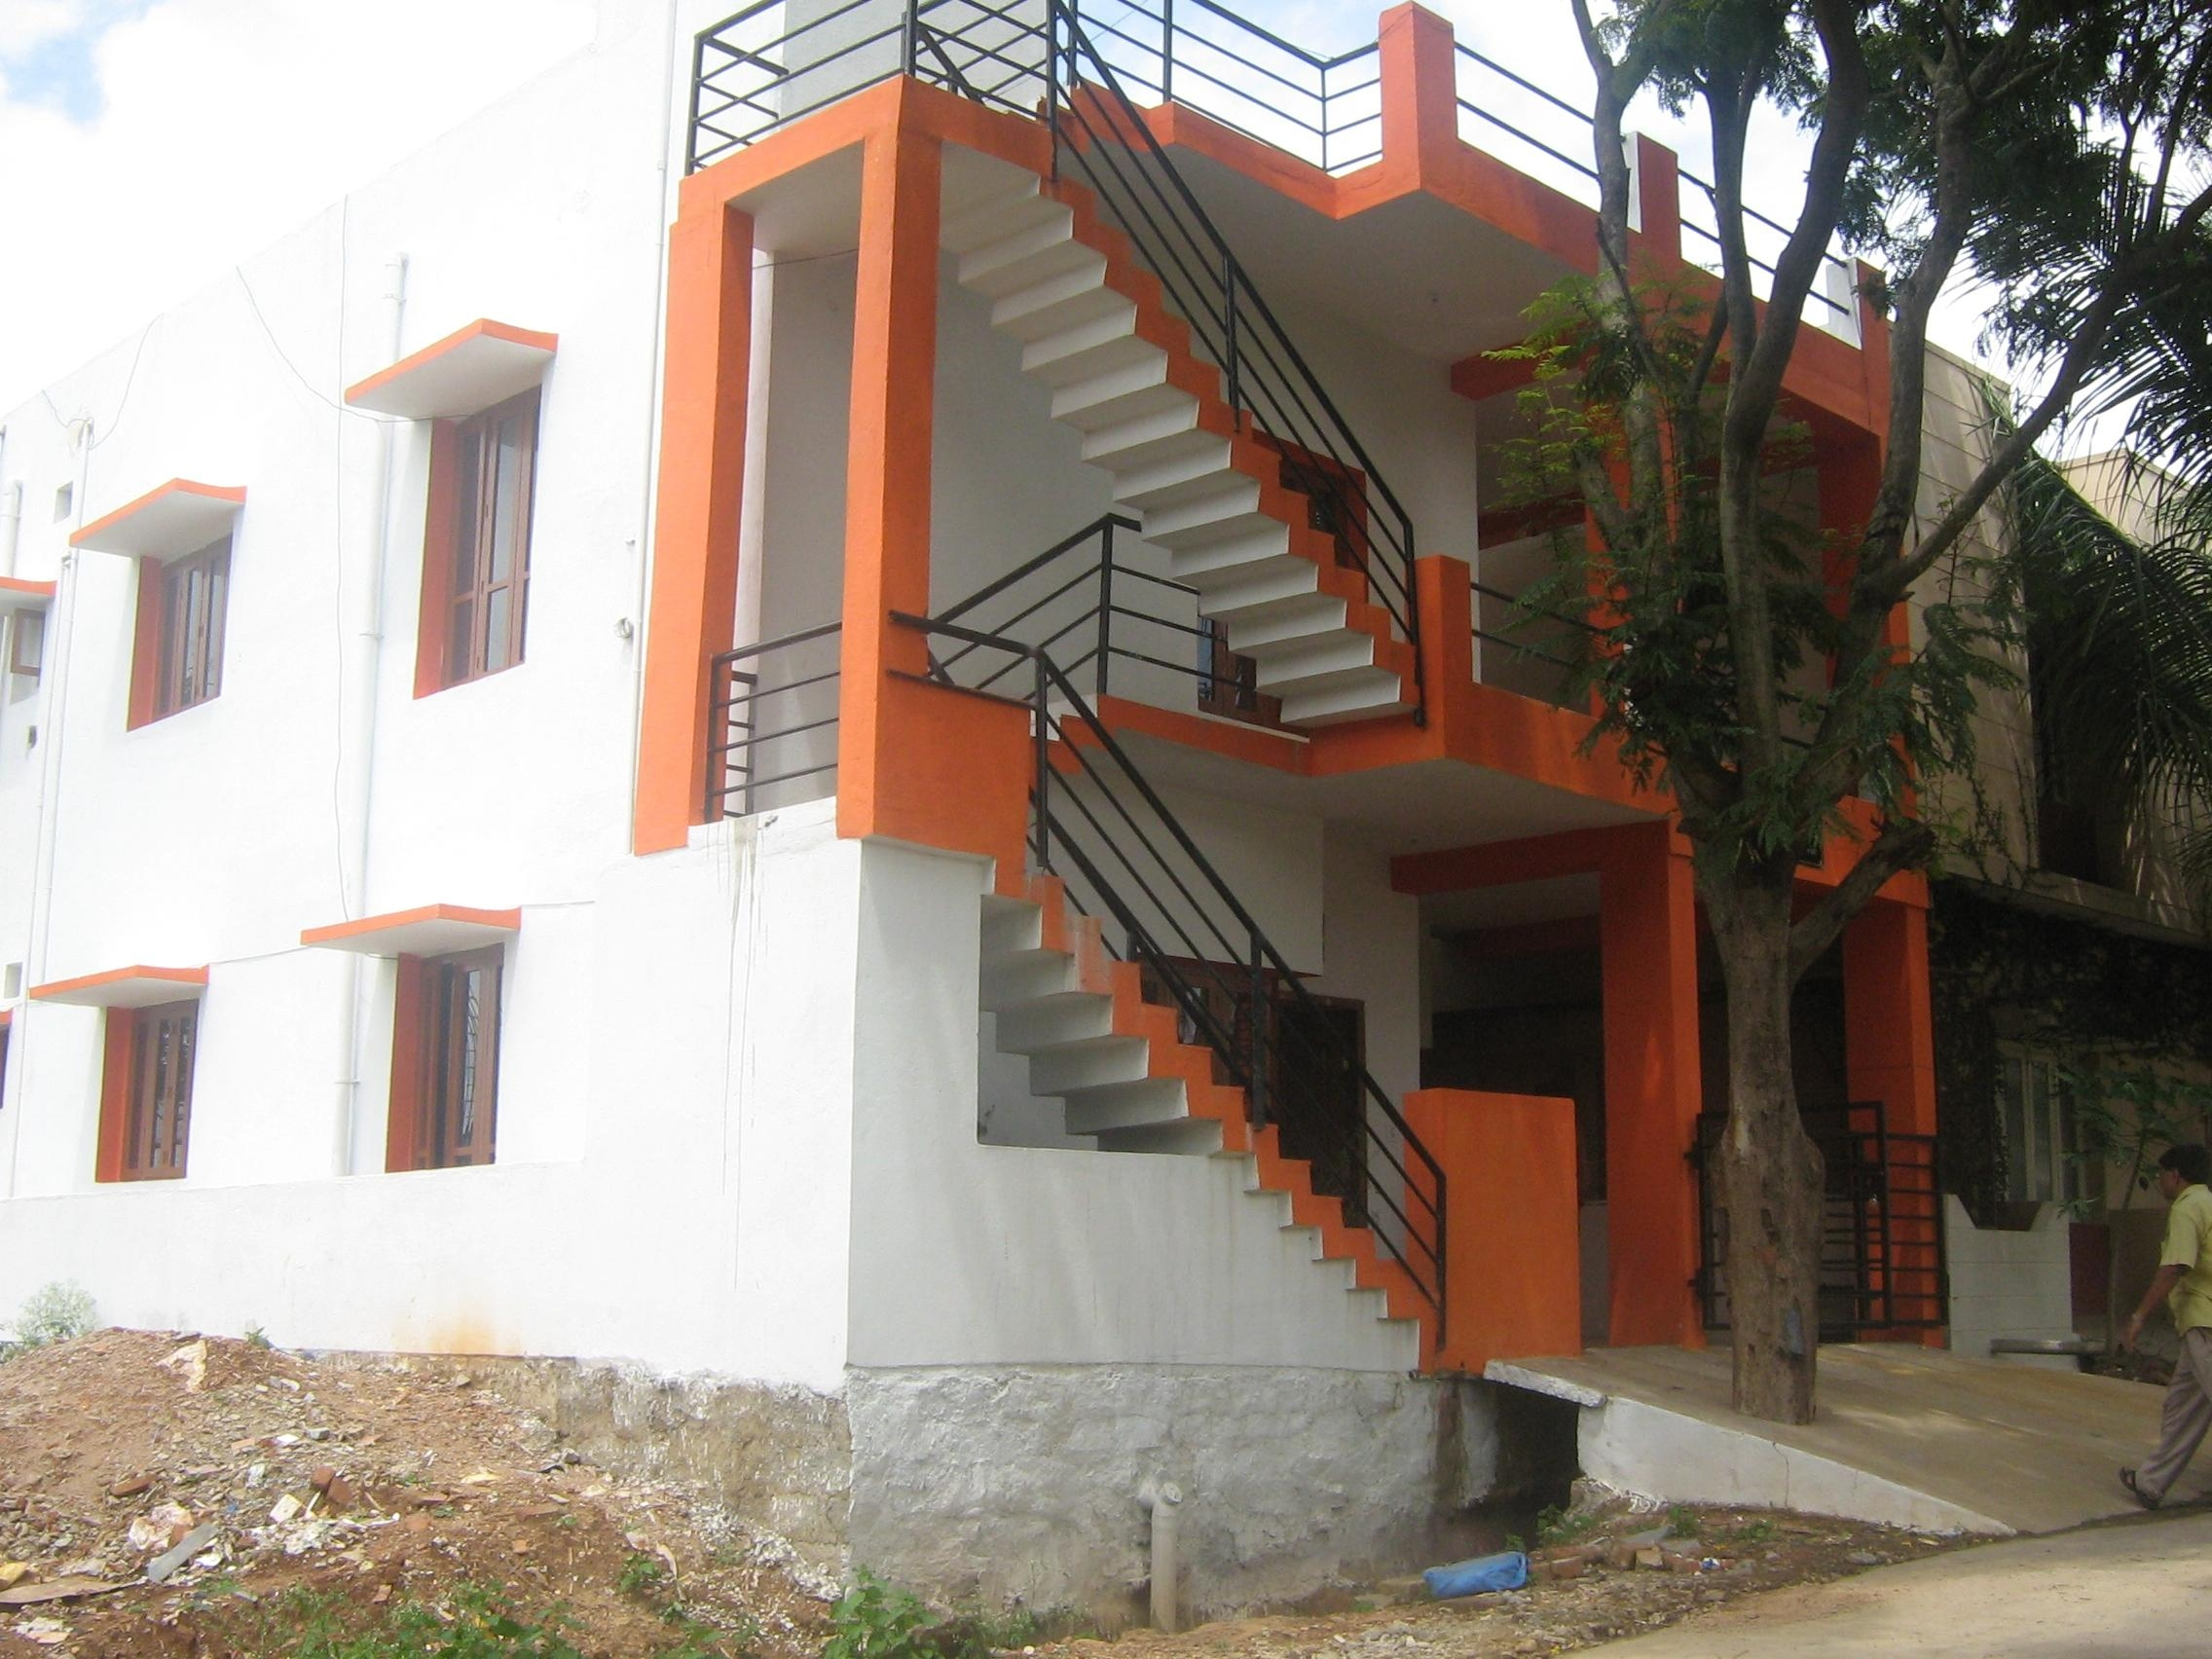 External Folded Stairs Gharexpert | Outside Steps Design For Home | Garden | Second Floor | Low Cost | Main Entrance Step | Railing